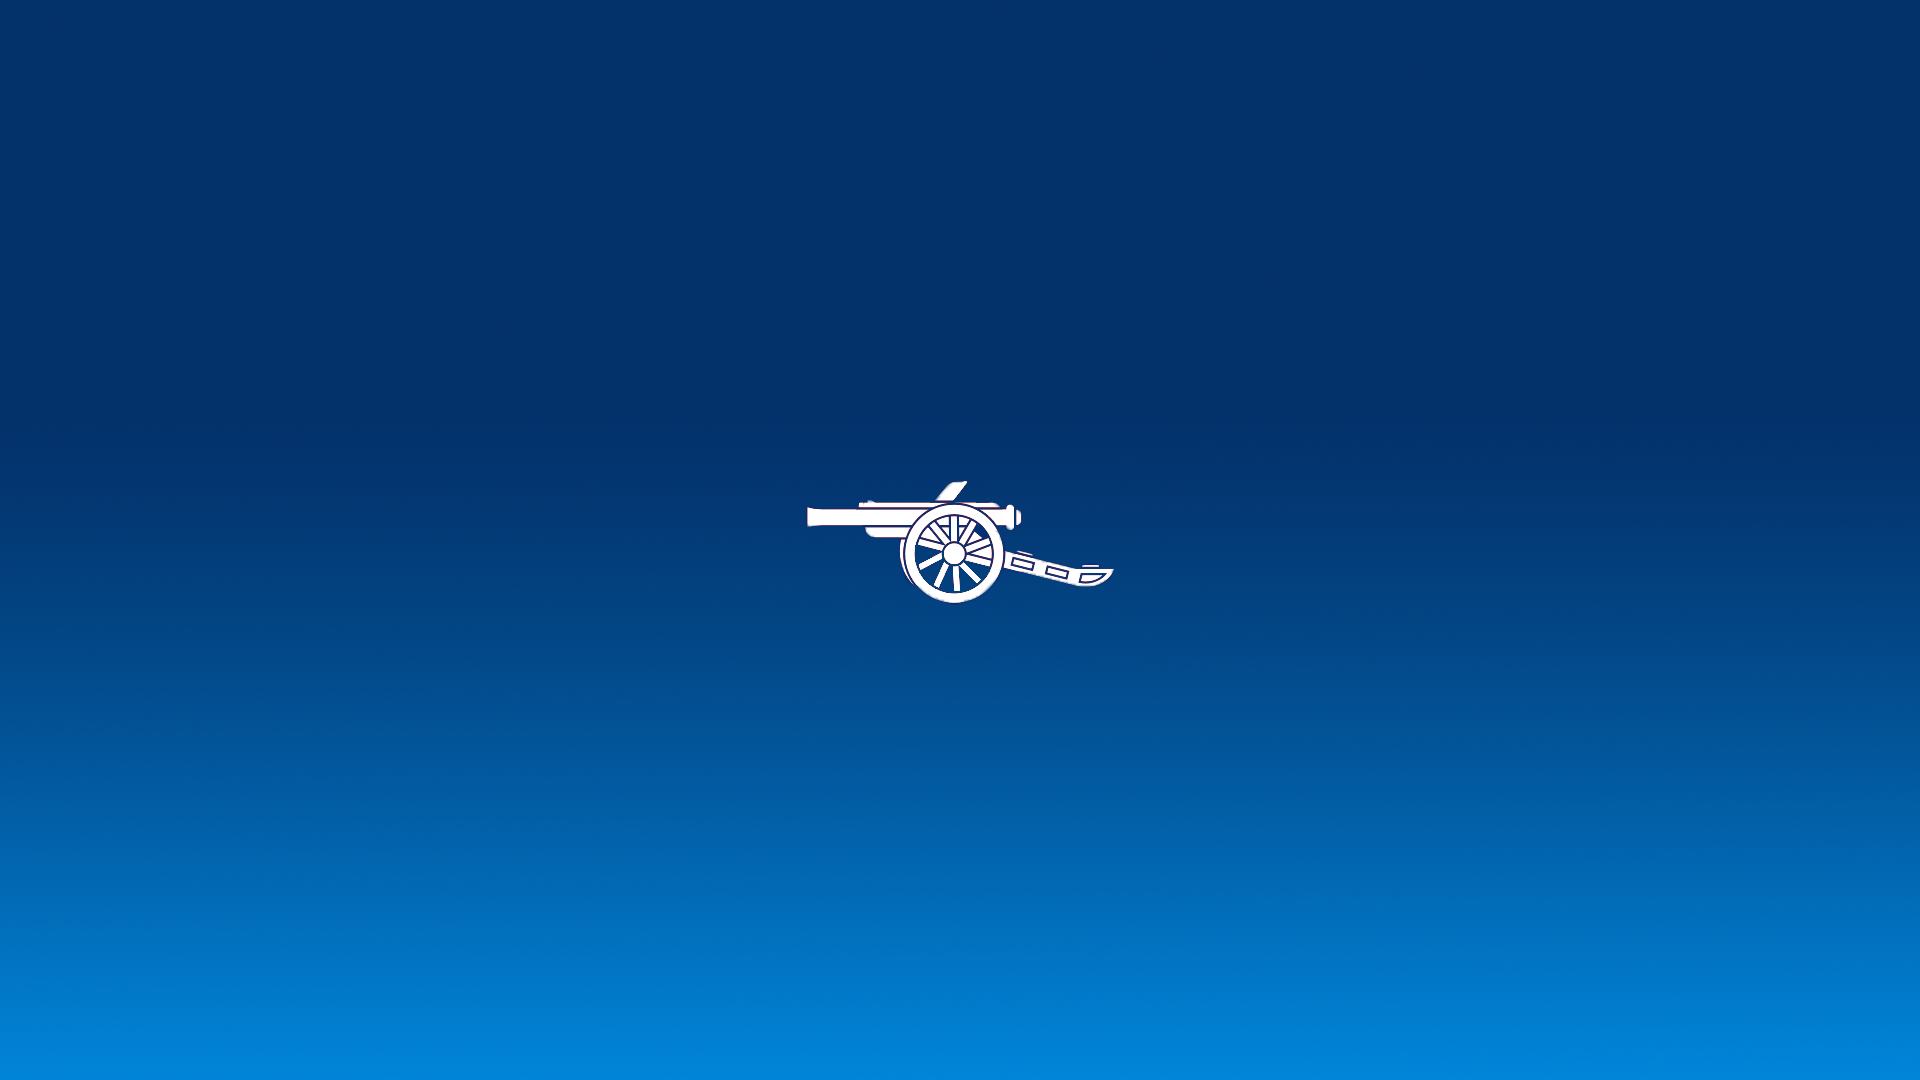 Arsenal hd minimal wallpapers by dubai777 on deviantart for Minimal art hd